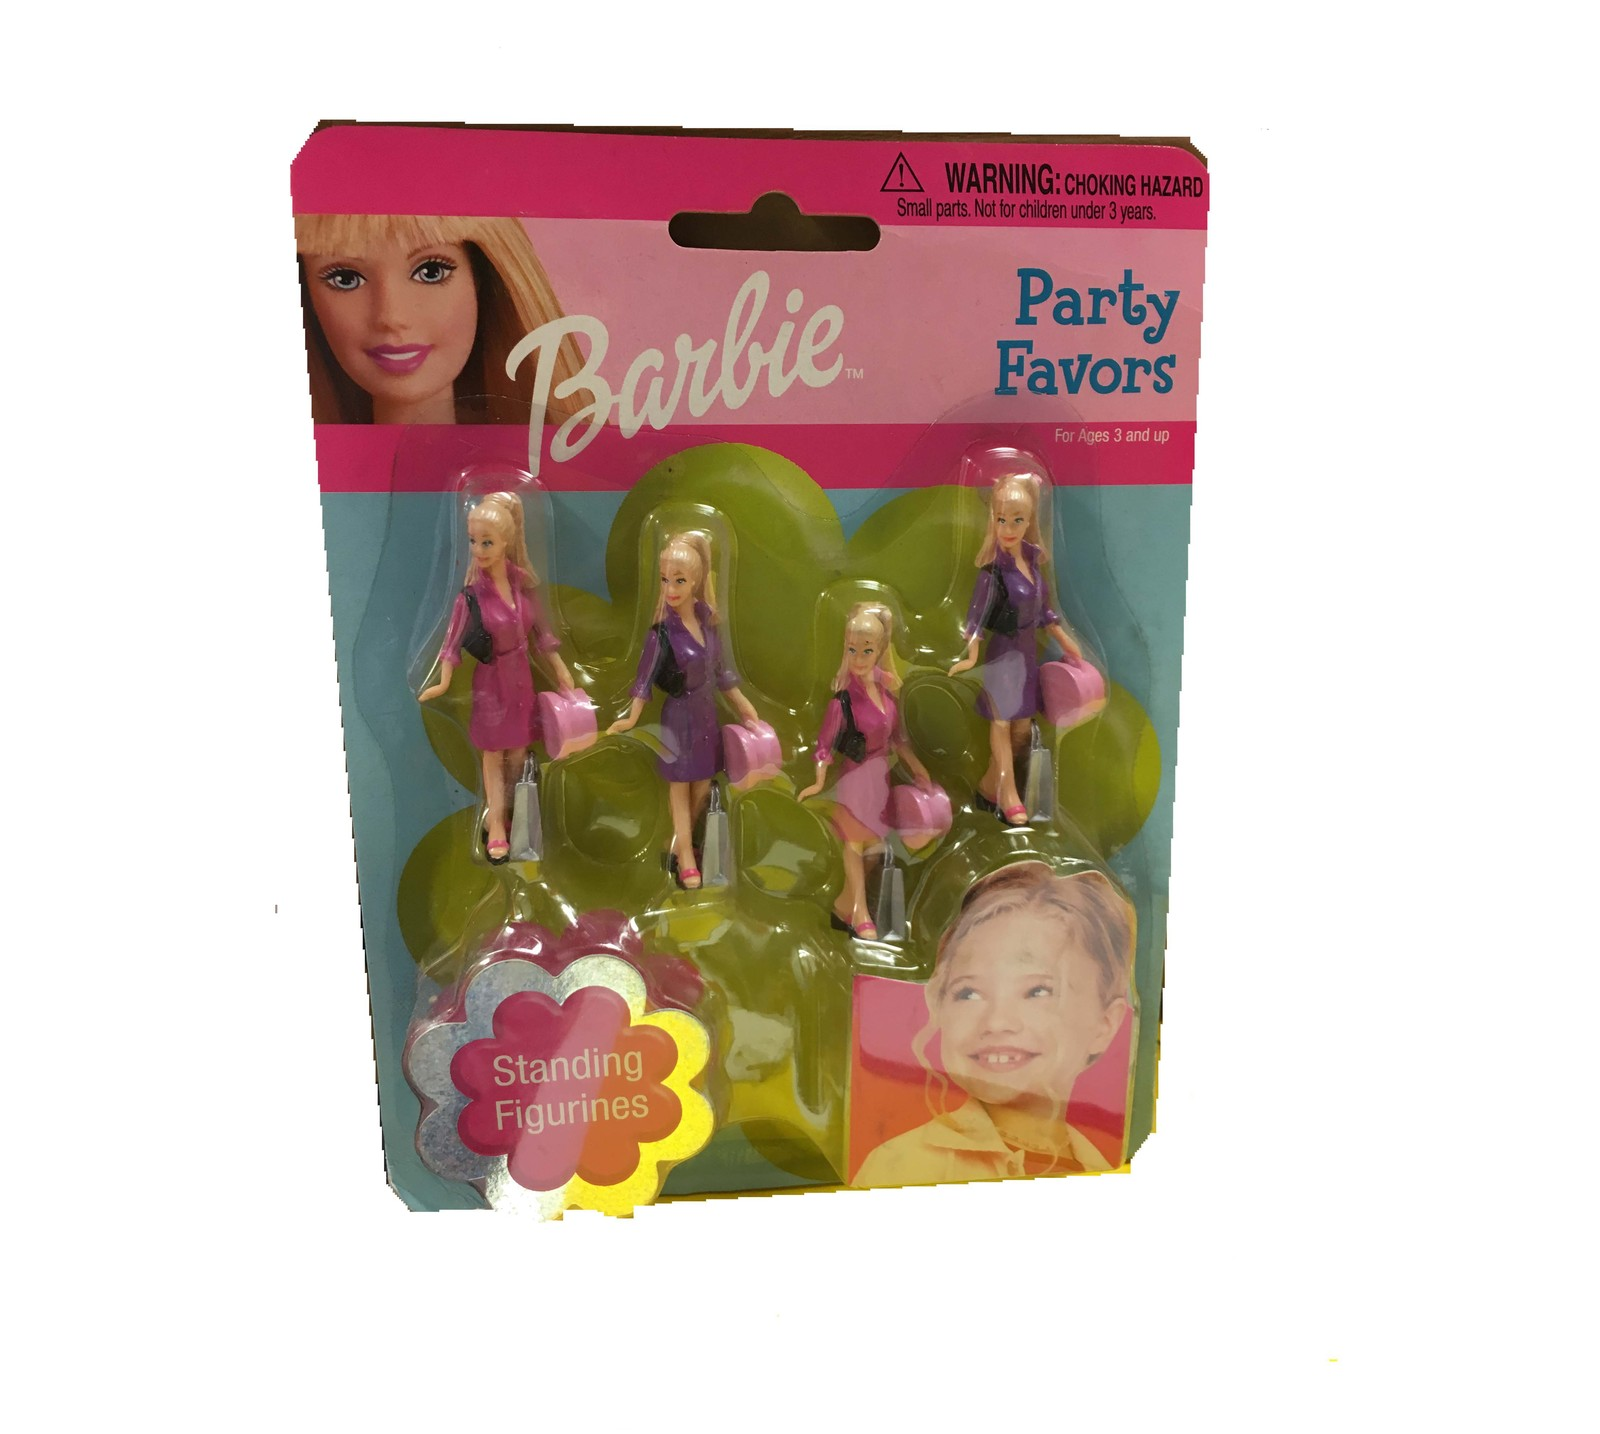 Primary image for BARBIE PARTY FAVORS STANDING FIGURINES